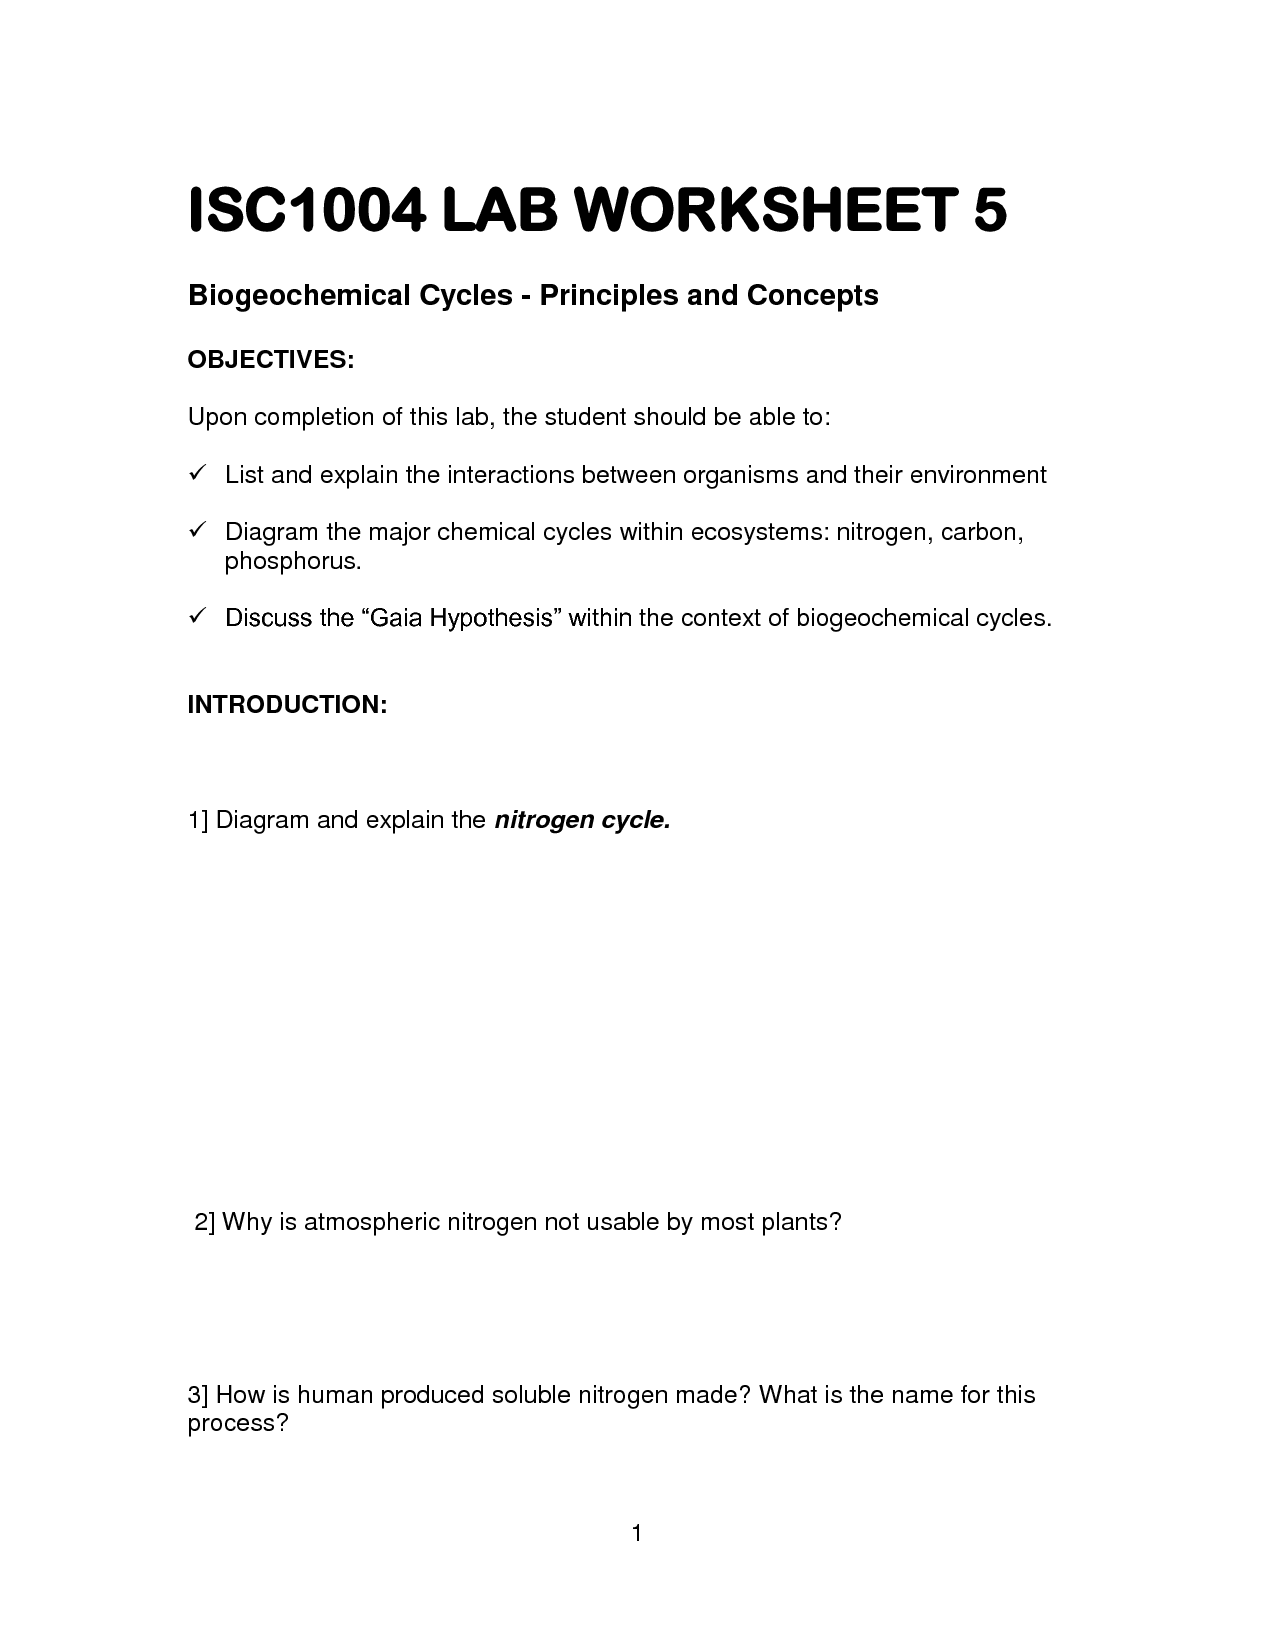 17 Best Images Of Nitrogen Cycle Worksheet